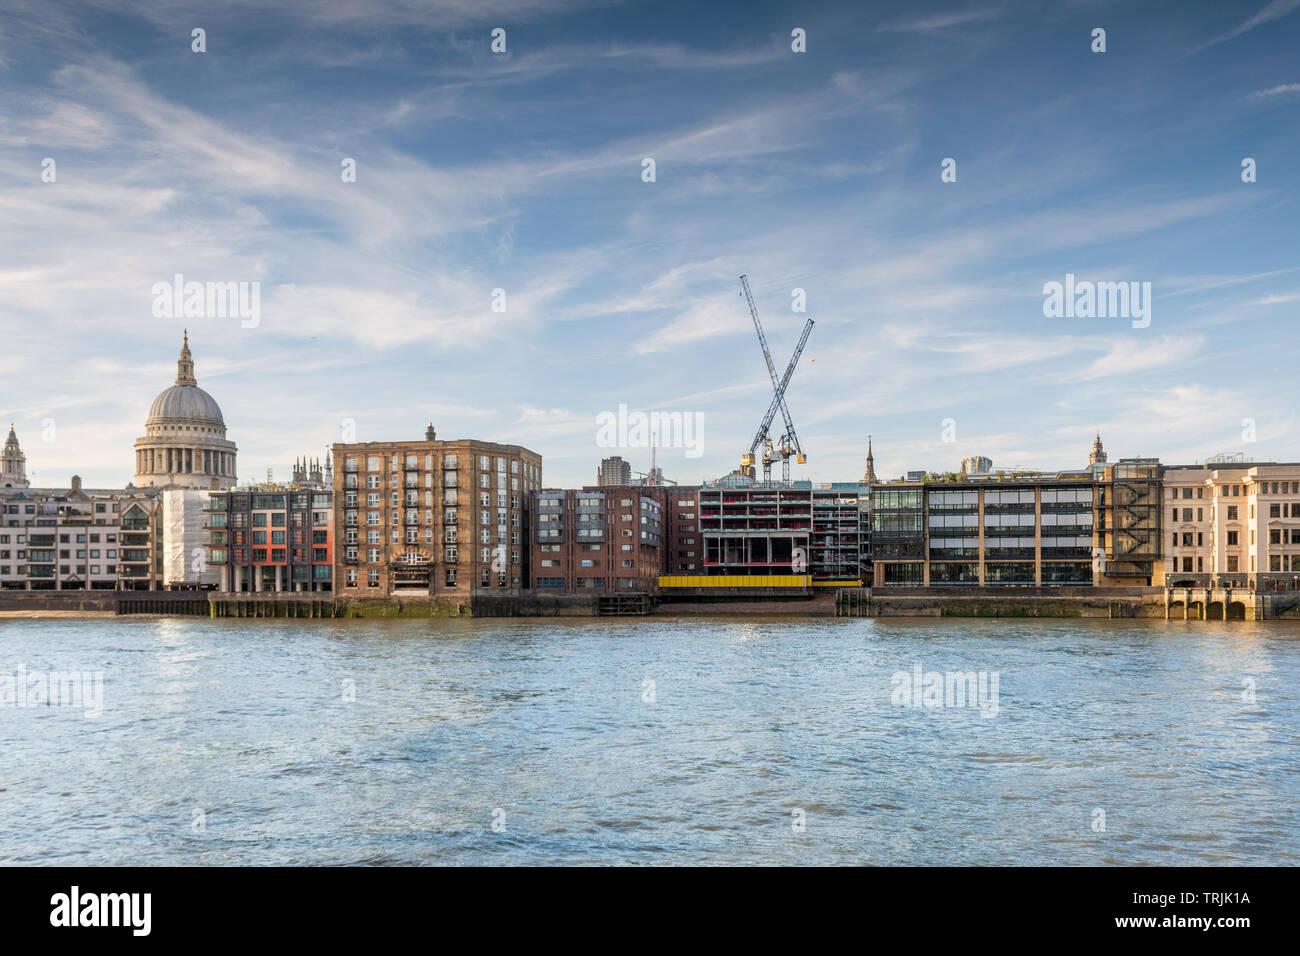 Thames Riverside, City of London, in the evening - Stock Image